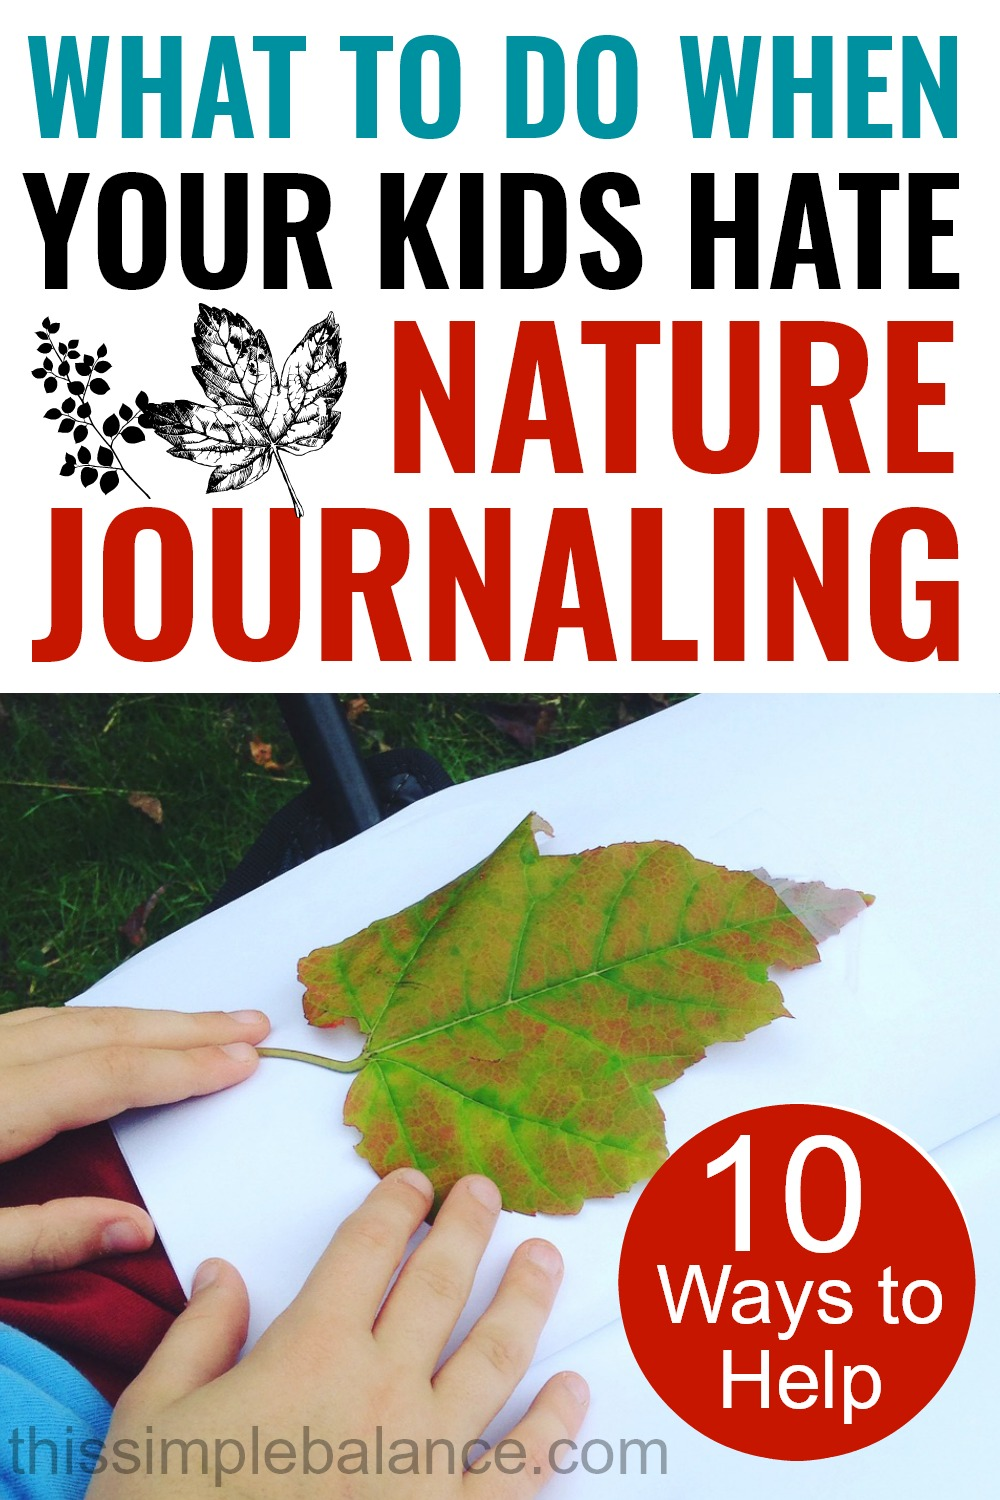 Nature Journaling for Kids: Ideas for Kids Who Don't Love Nature Journaling. 10 Things You Can Change to Make Them Love It!